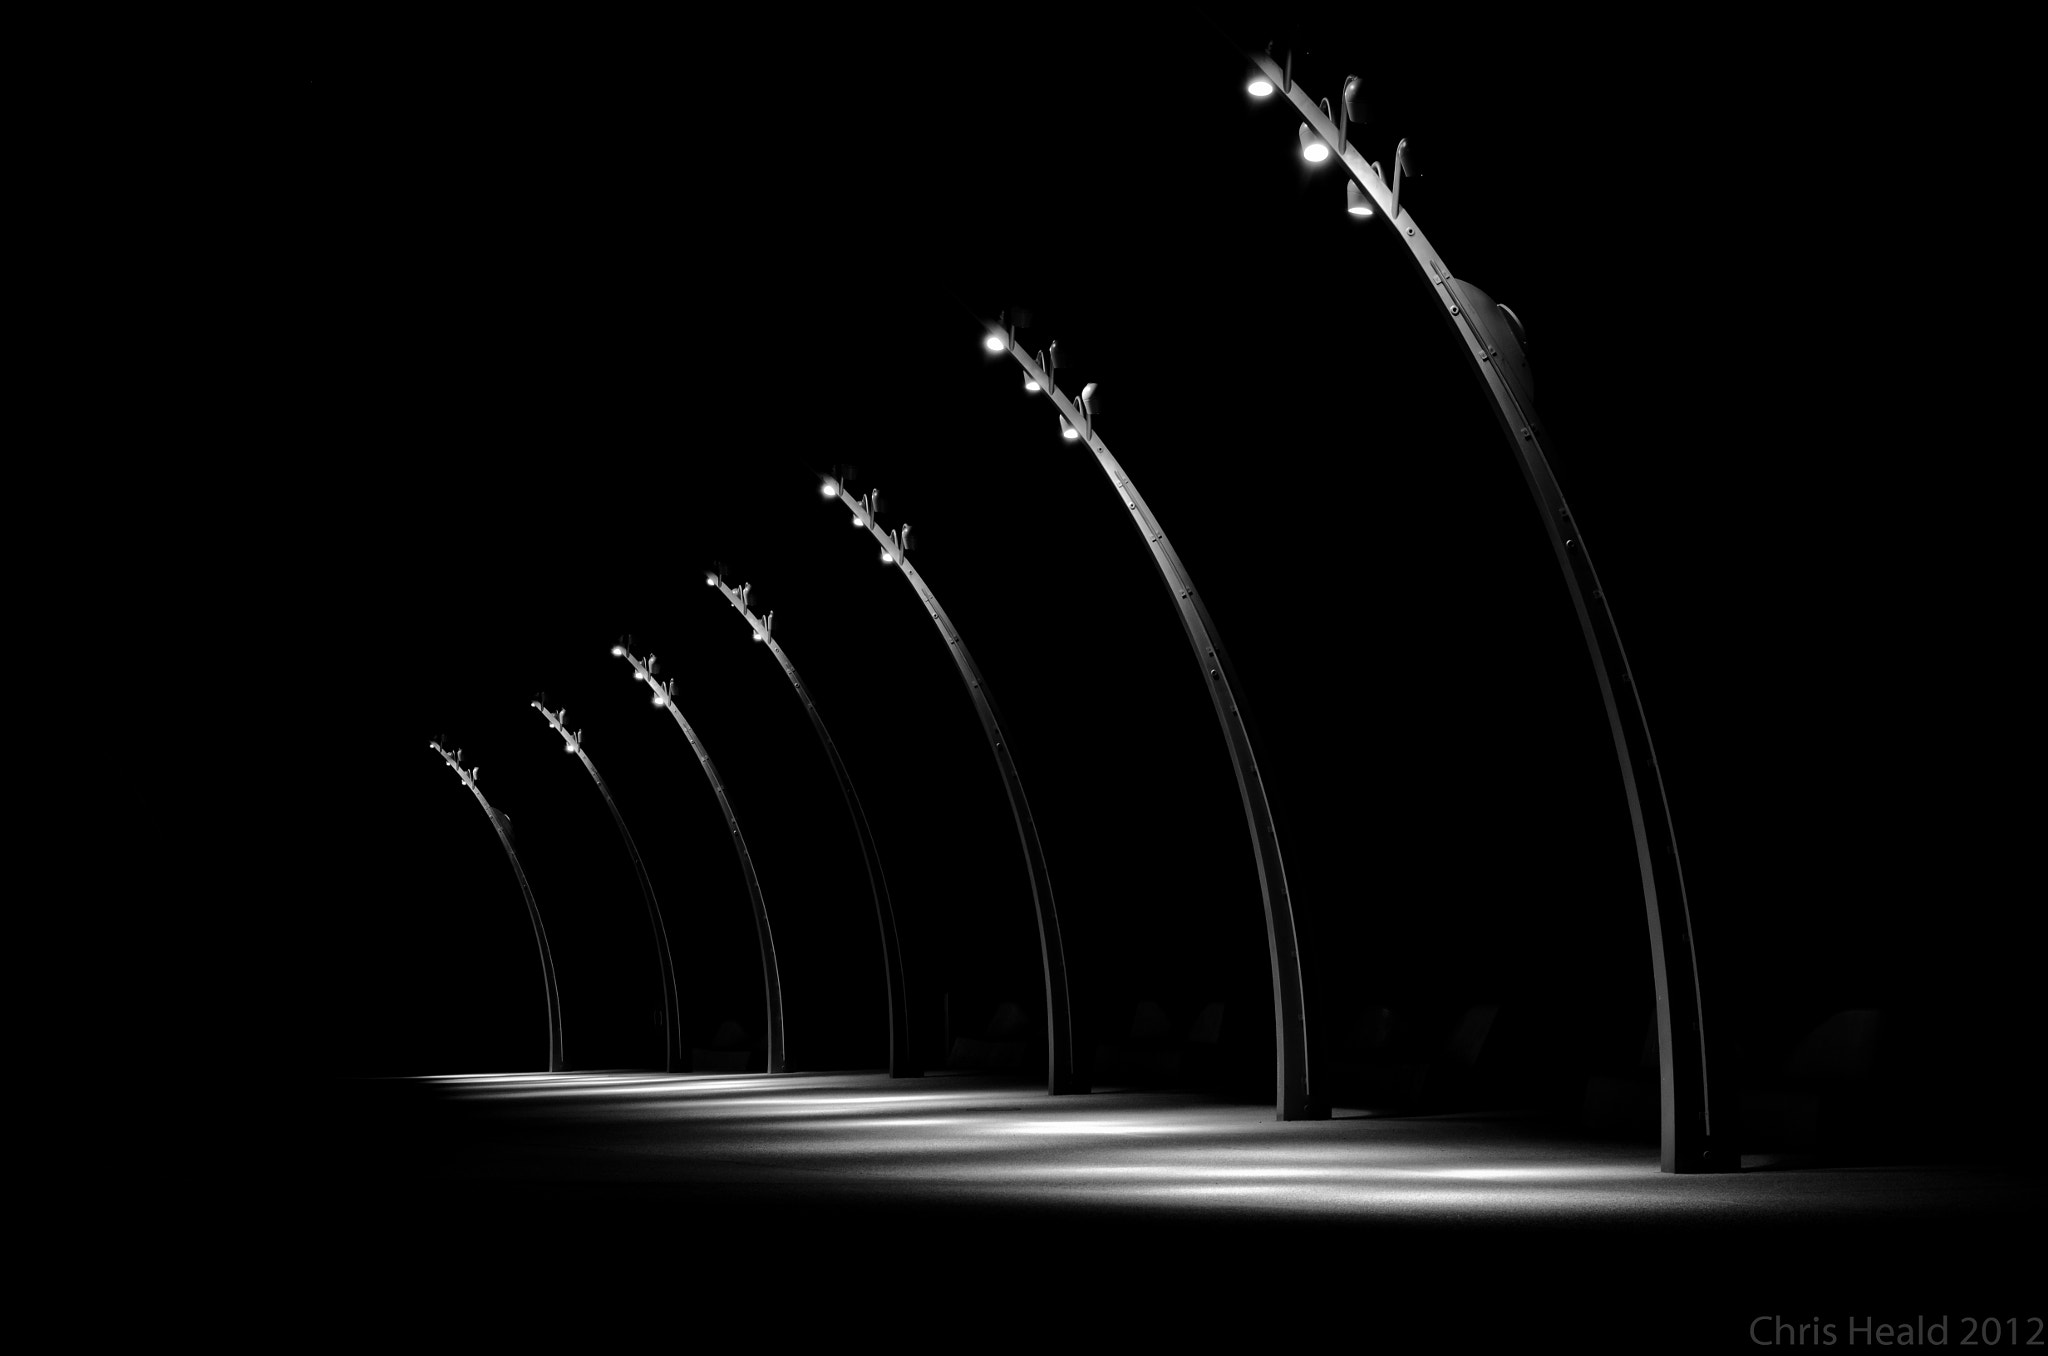 Photograph There are Seven Lights by Chris Heald on 500px